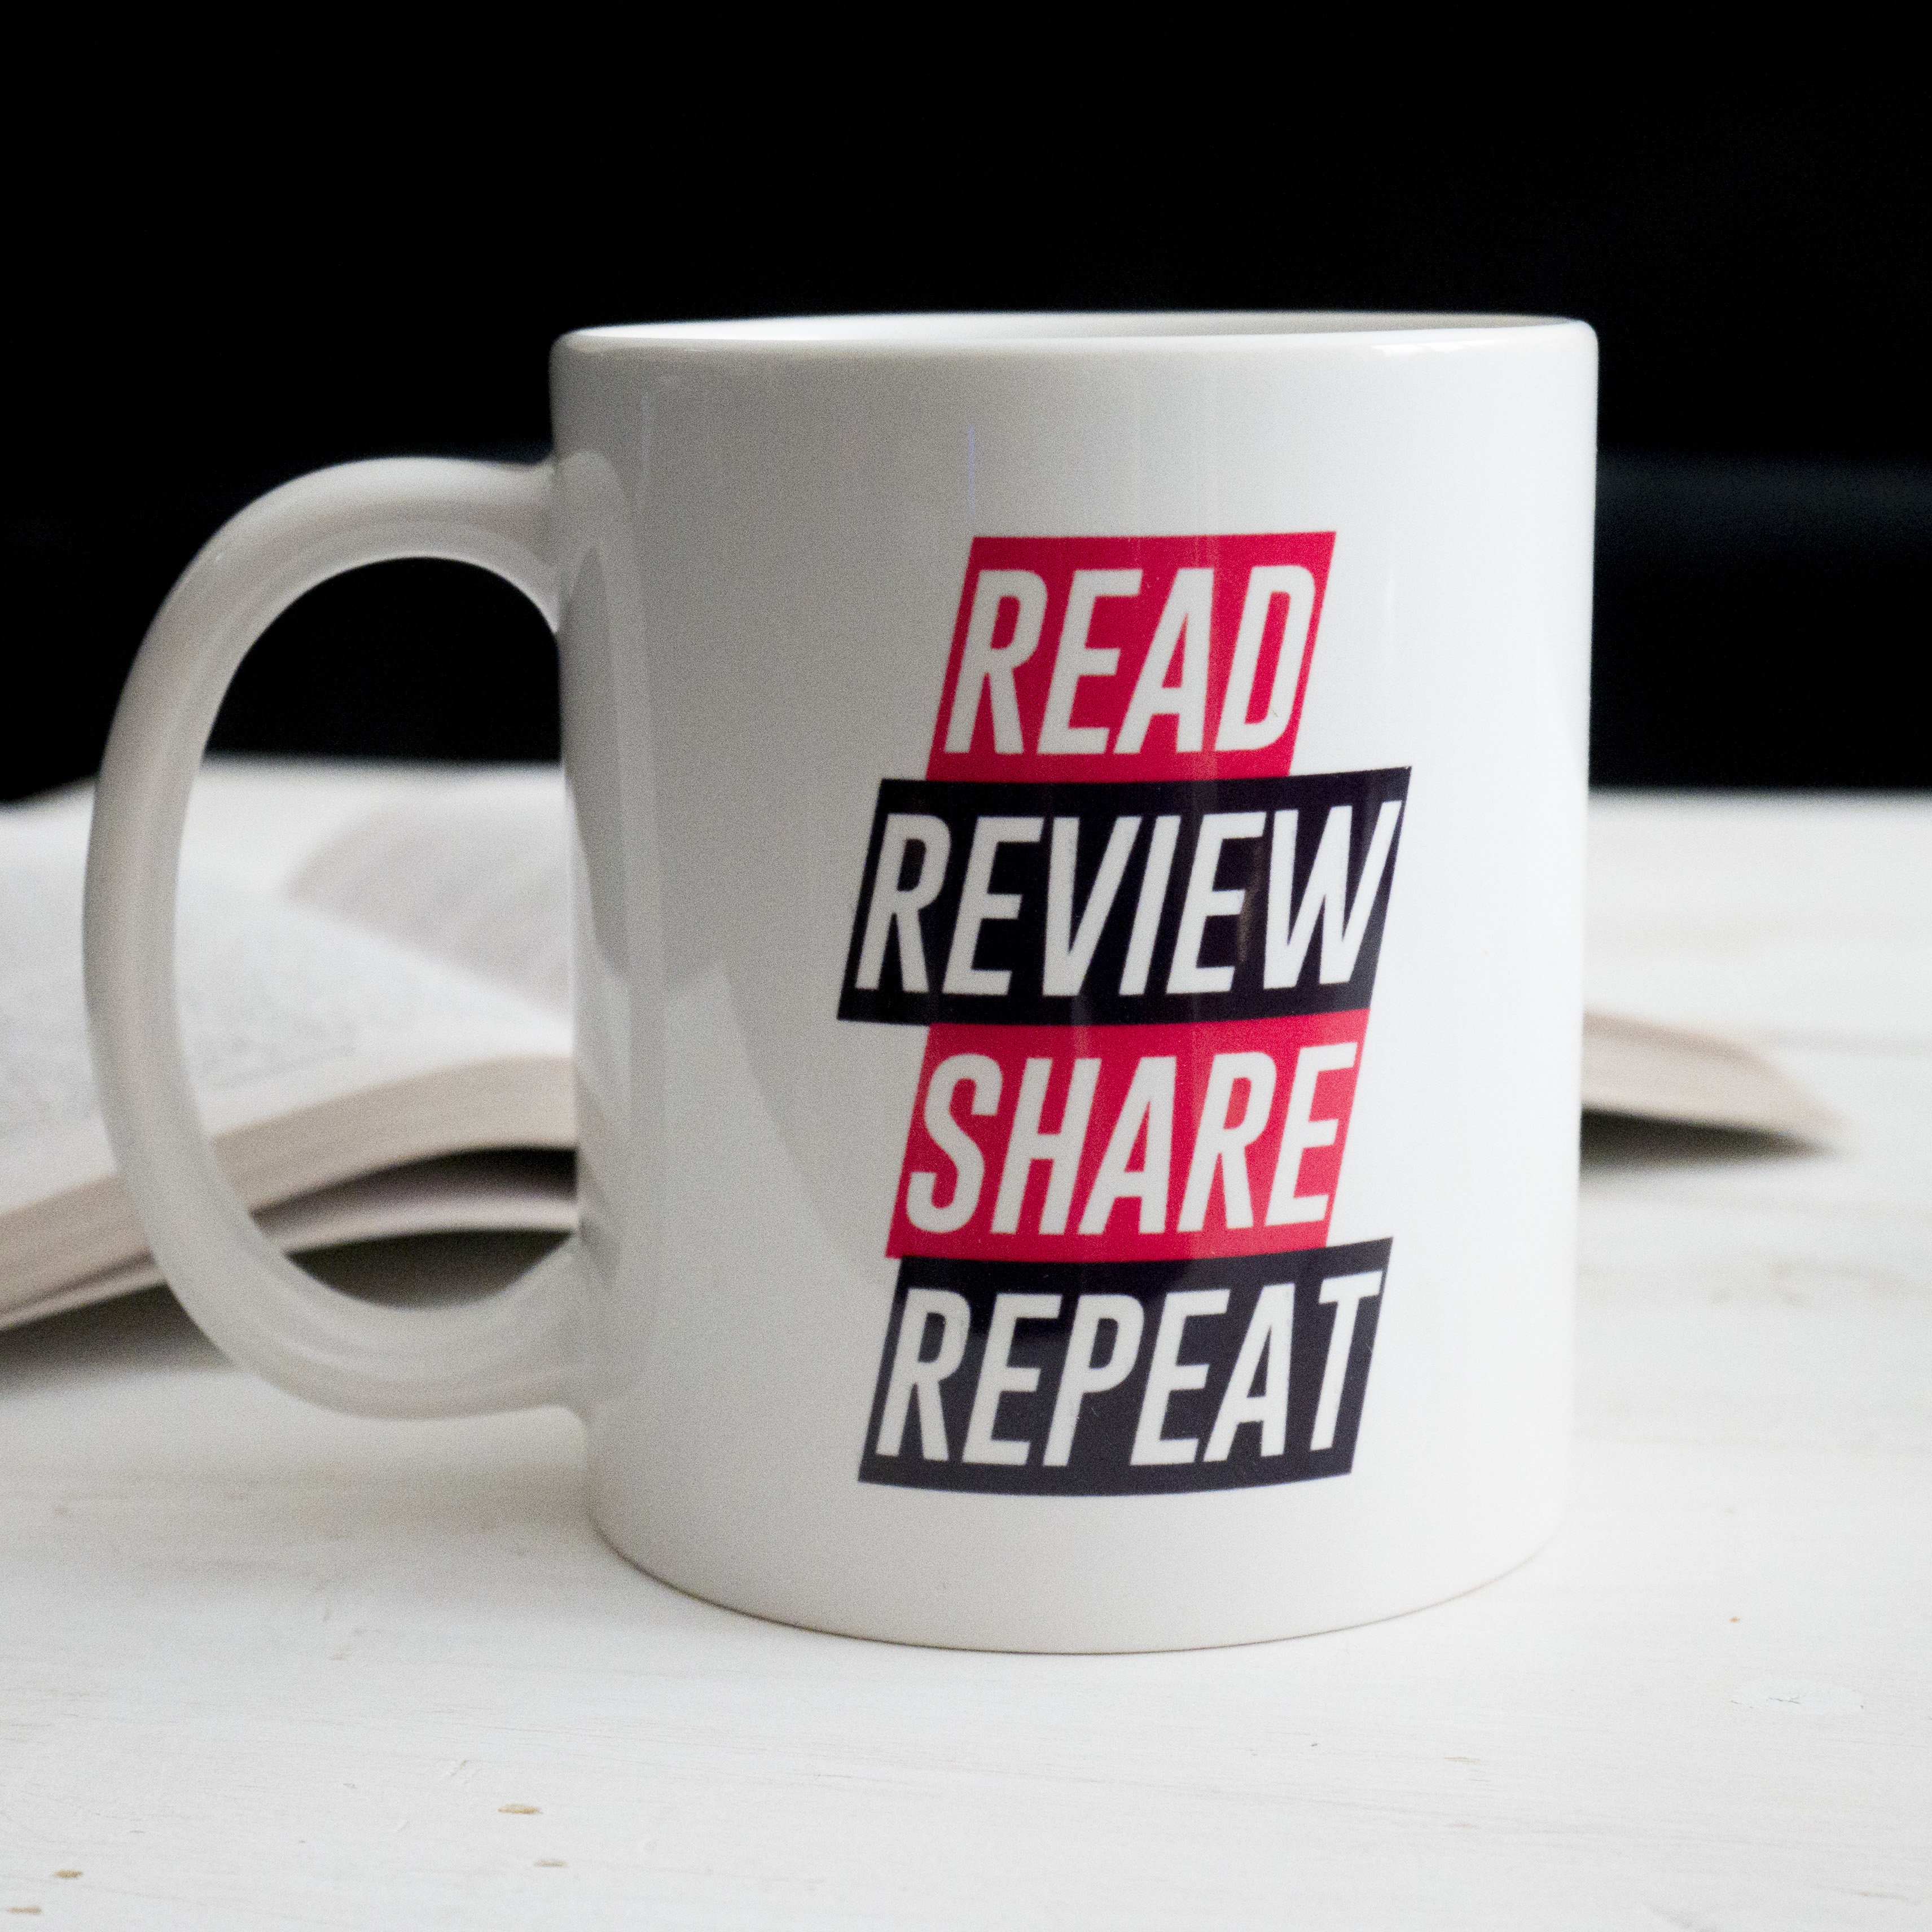 Read, Review, Share, Repeat 00002